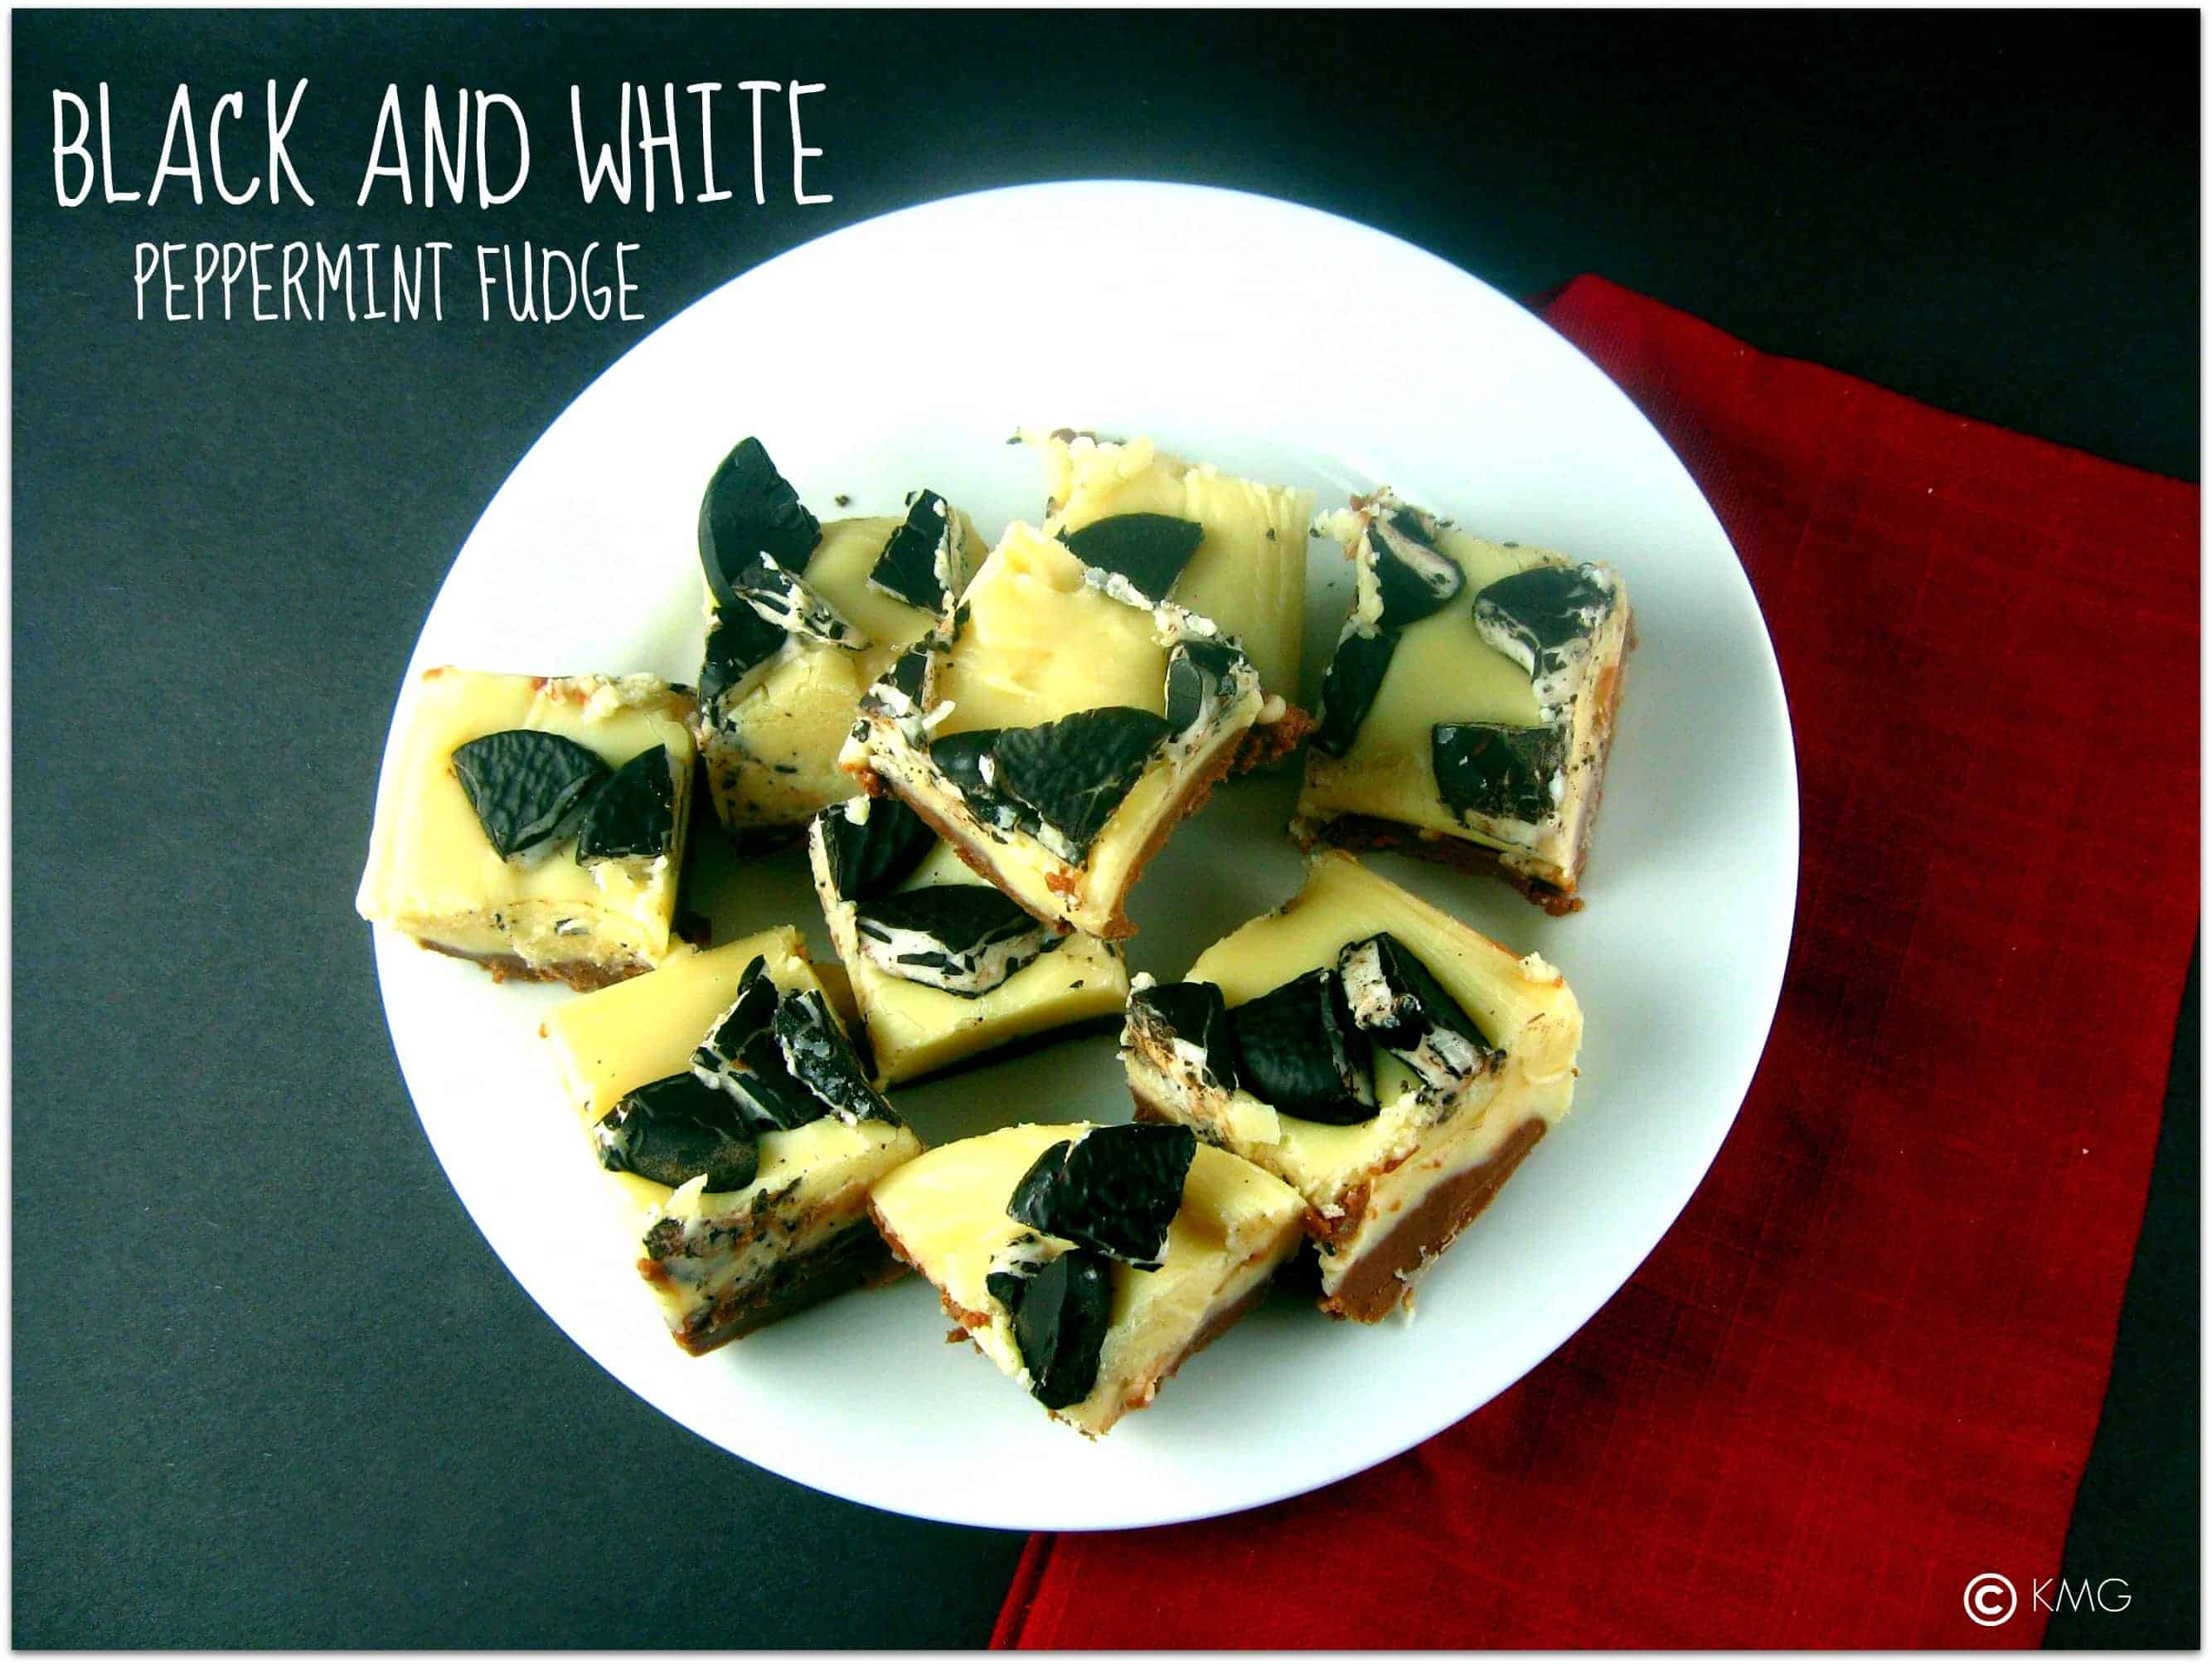 Black and White Peppermint Fudge